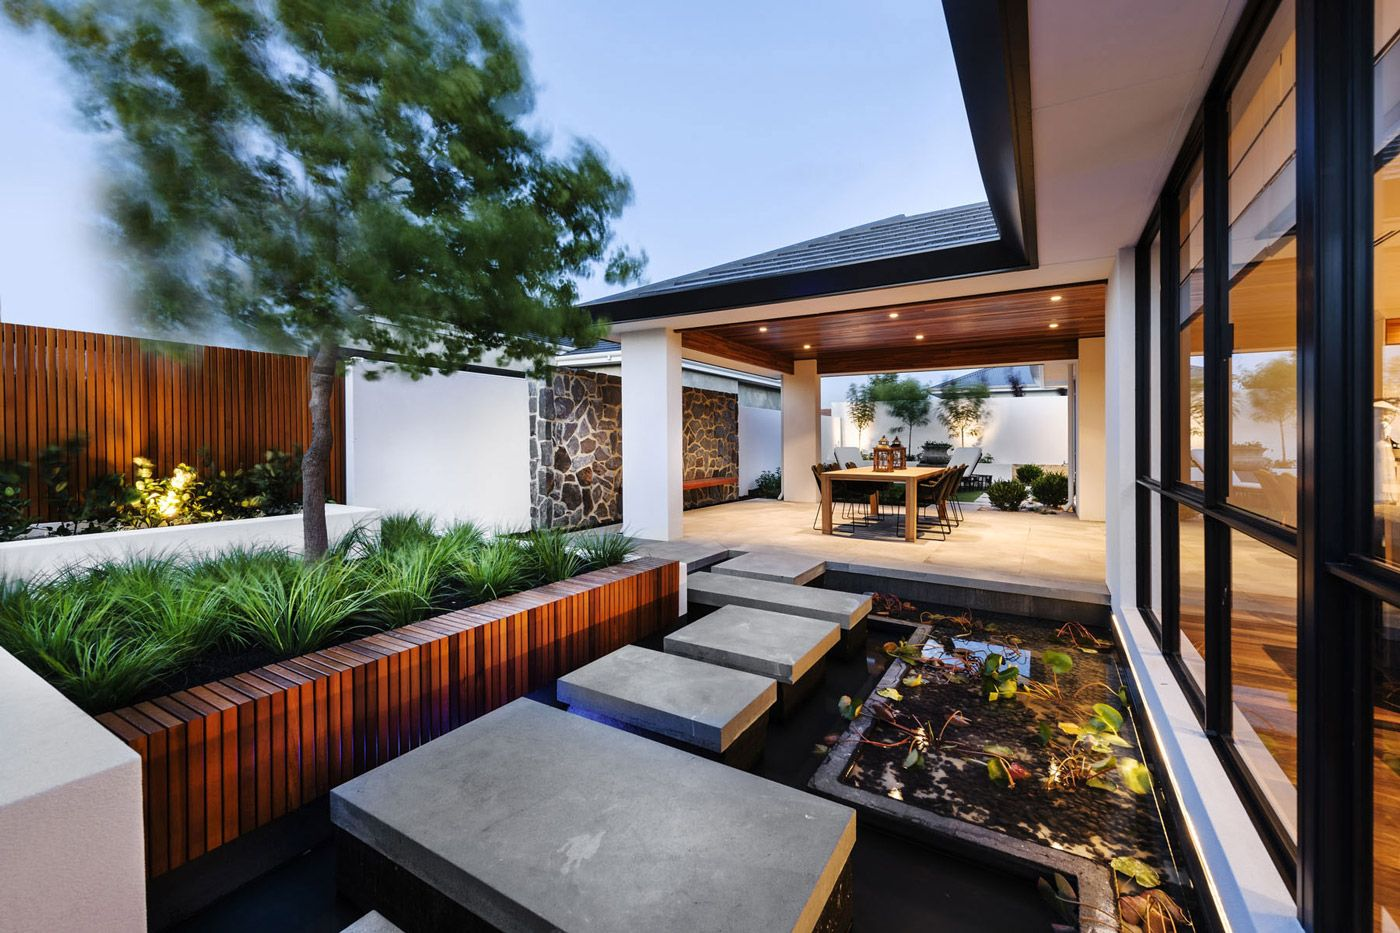 Stepping Stones Water Feature Veranda Outdoor Dining House in